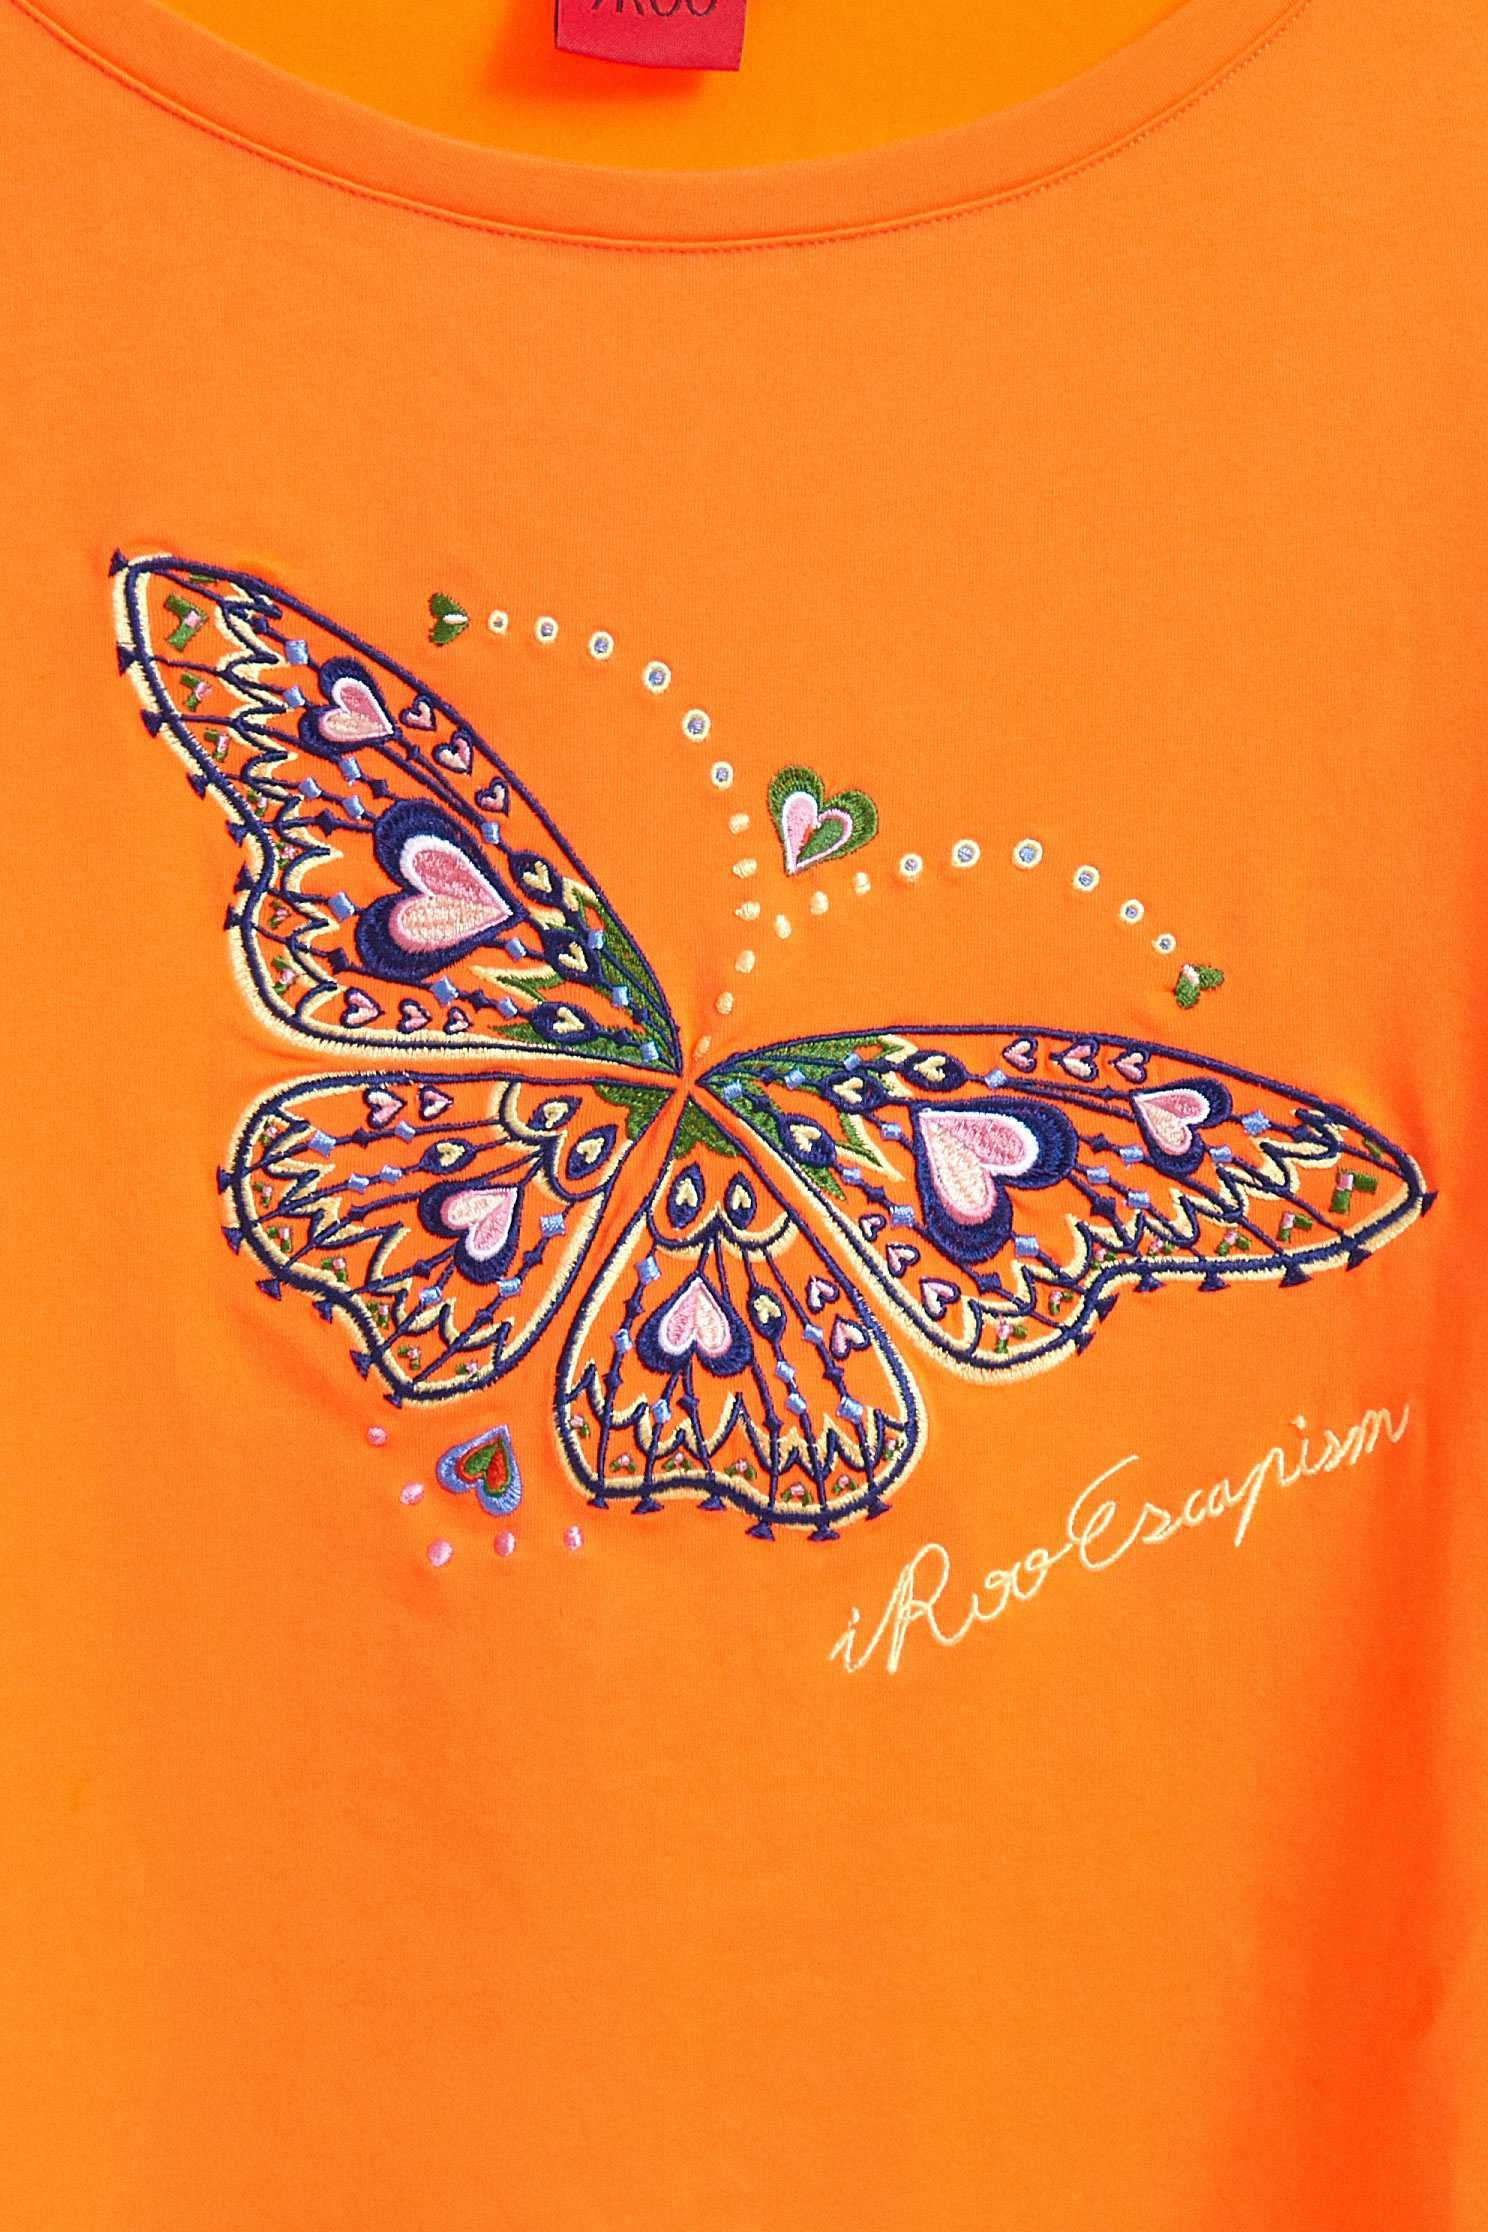 Butterfly shape popular shirt,top,elbowsleevetop,embroidery,embroideredtop,roundnecktop,embroidered,embroideredtop